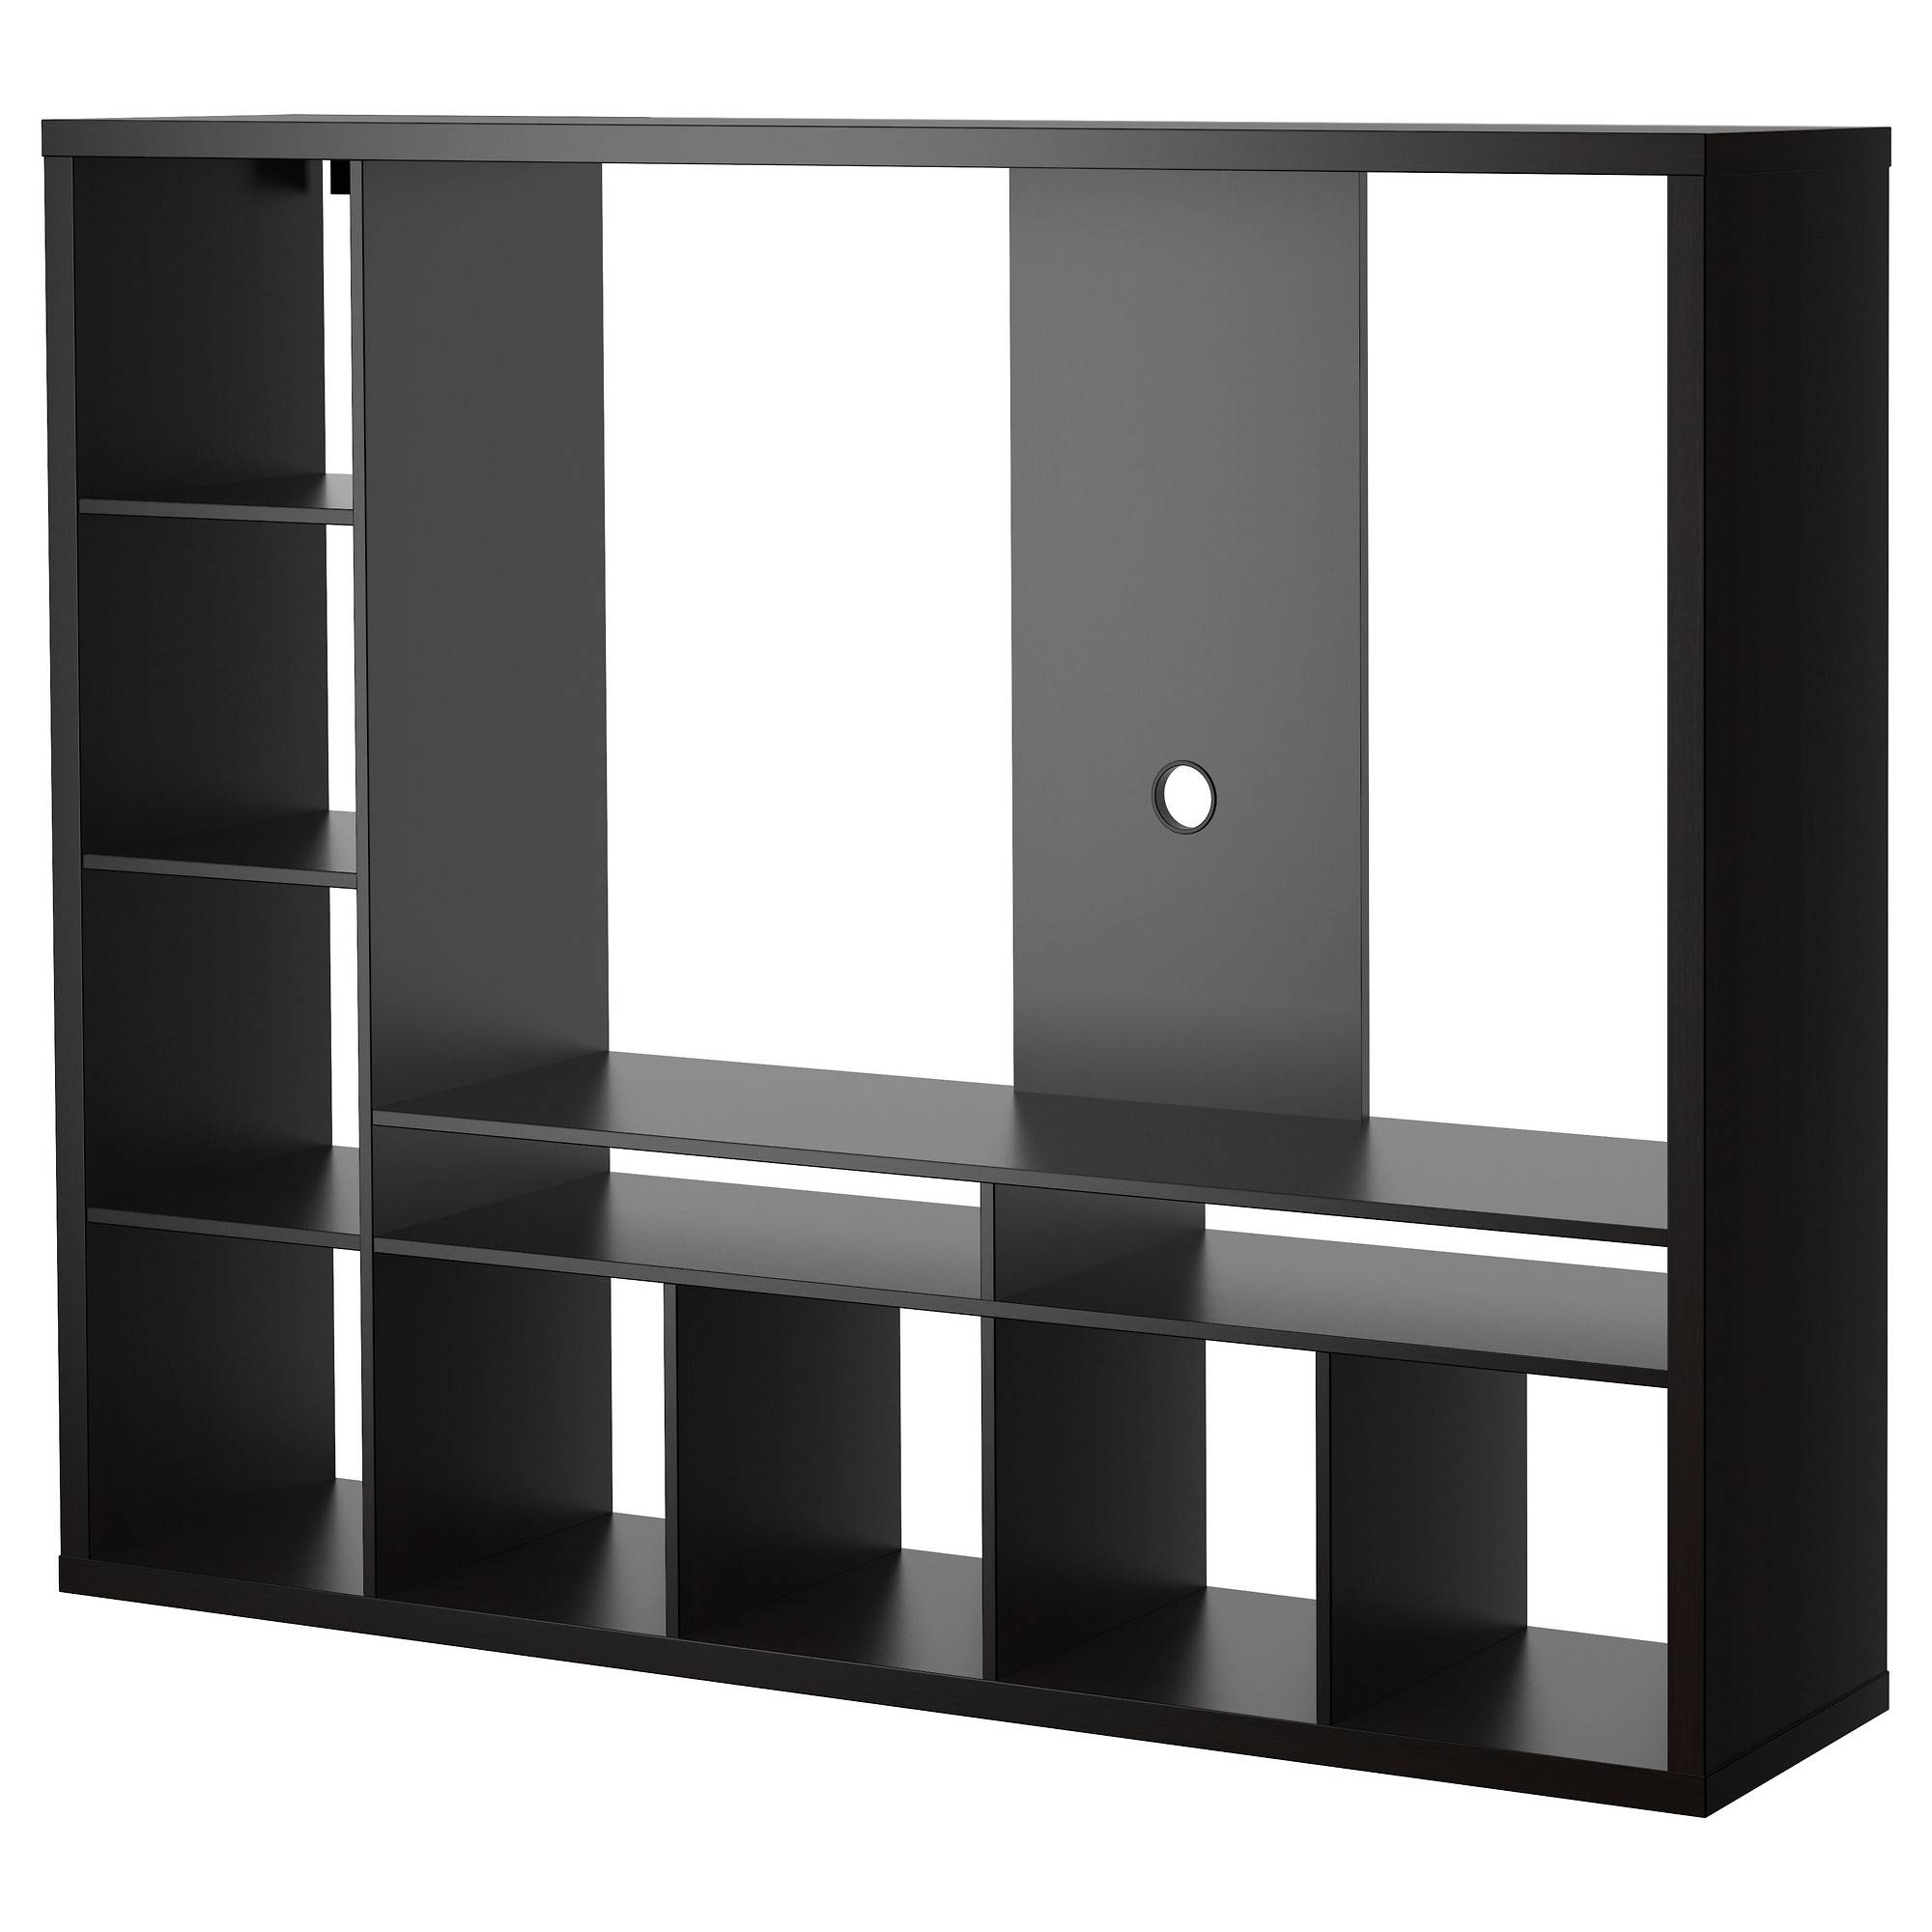 Lappland Tv Storage Unit – Black Brown – Ikea With Tv Stands With Baskets (View 13 of 15)